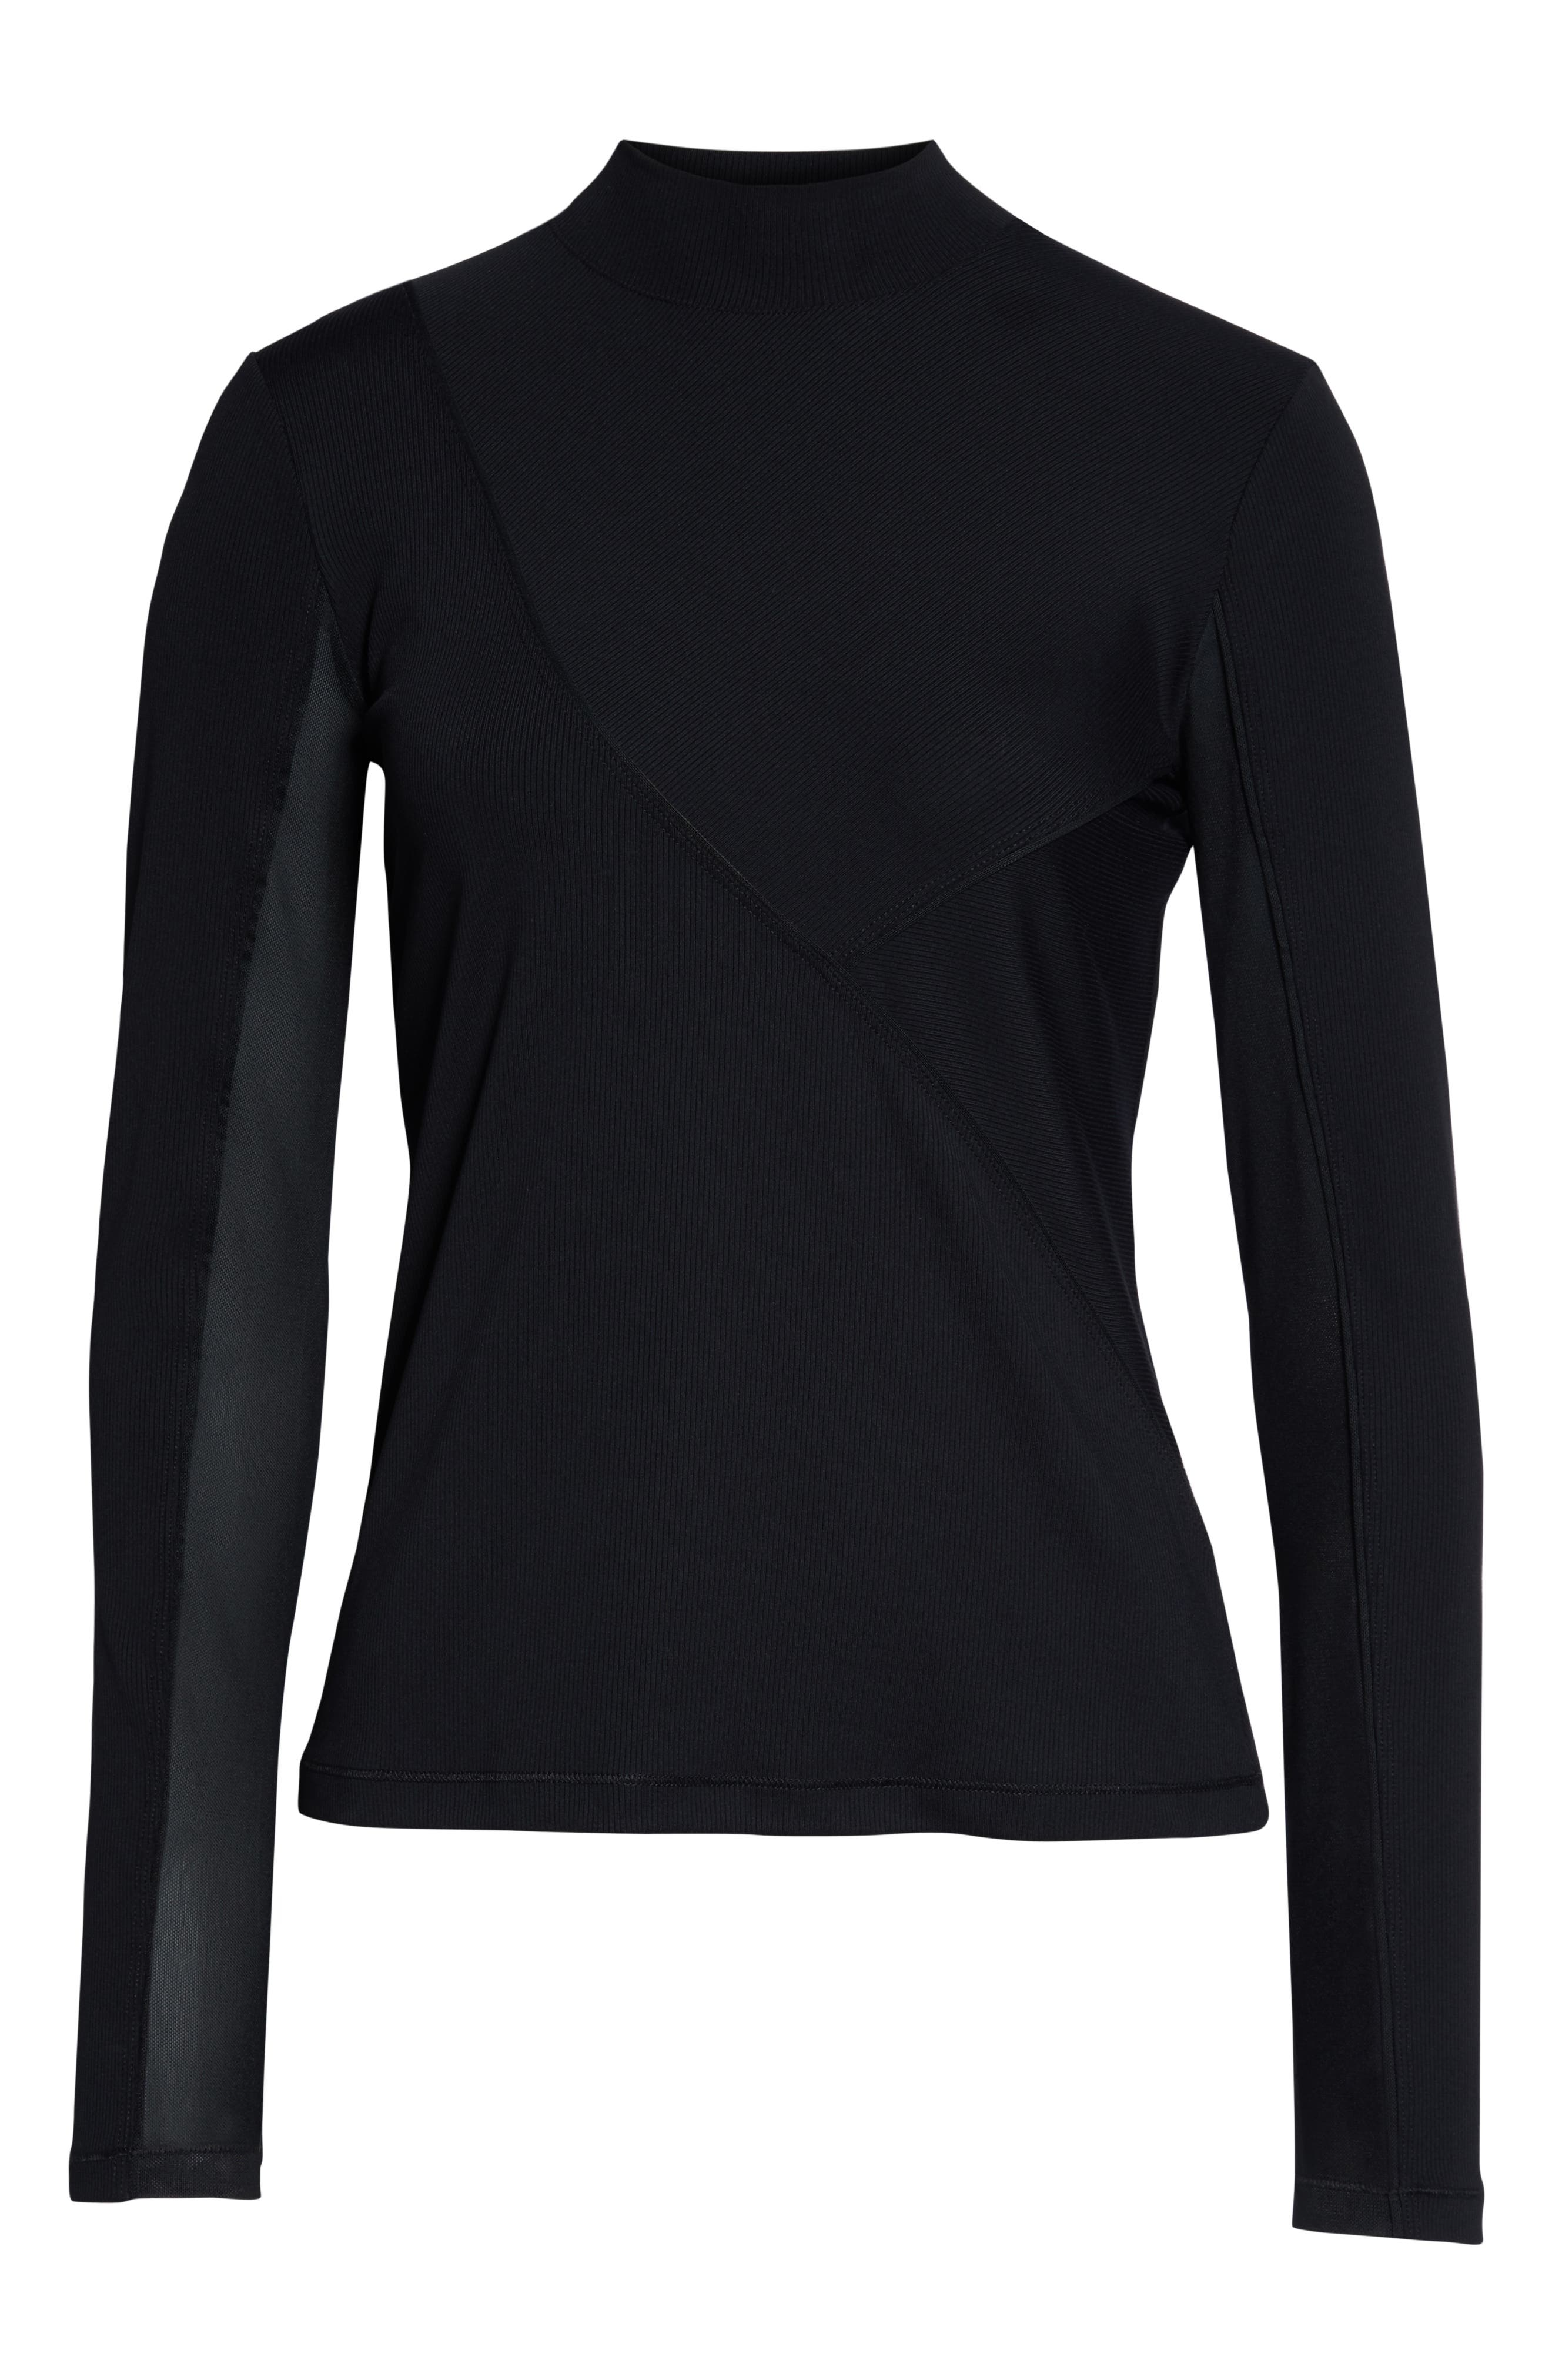 The Nike Pro HyperCool Women's Long Sleeve Ribbed Top,                             Alternate thumbnail 7, color,                             BLACK/ CLEAR